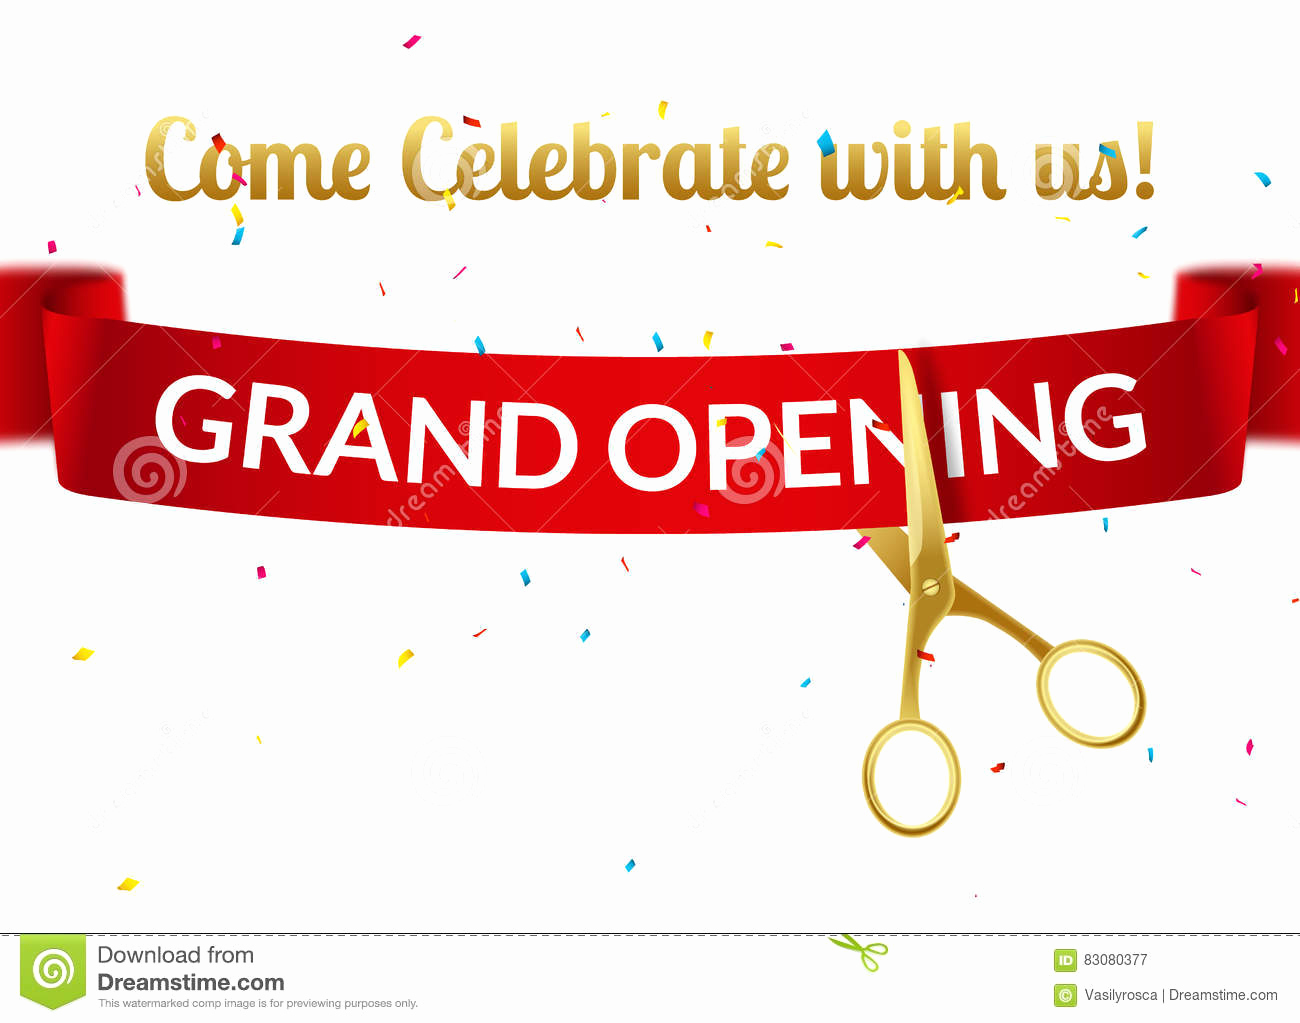 Grand Opening Invitation Template Unique Grand Opening Design Template with Ribbon and Scissors